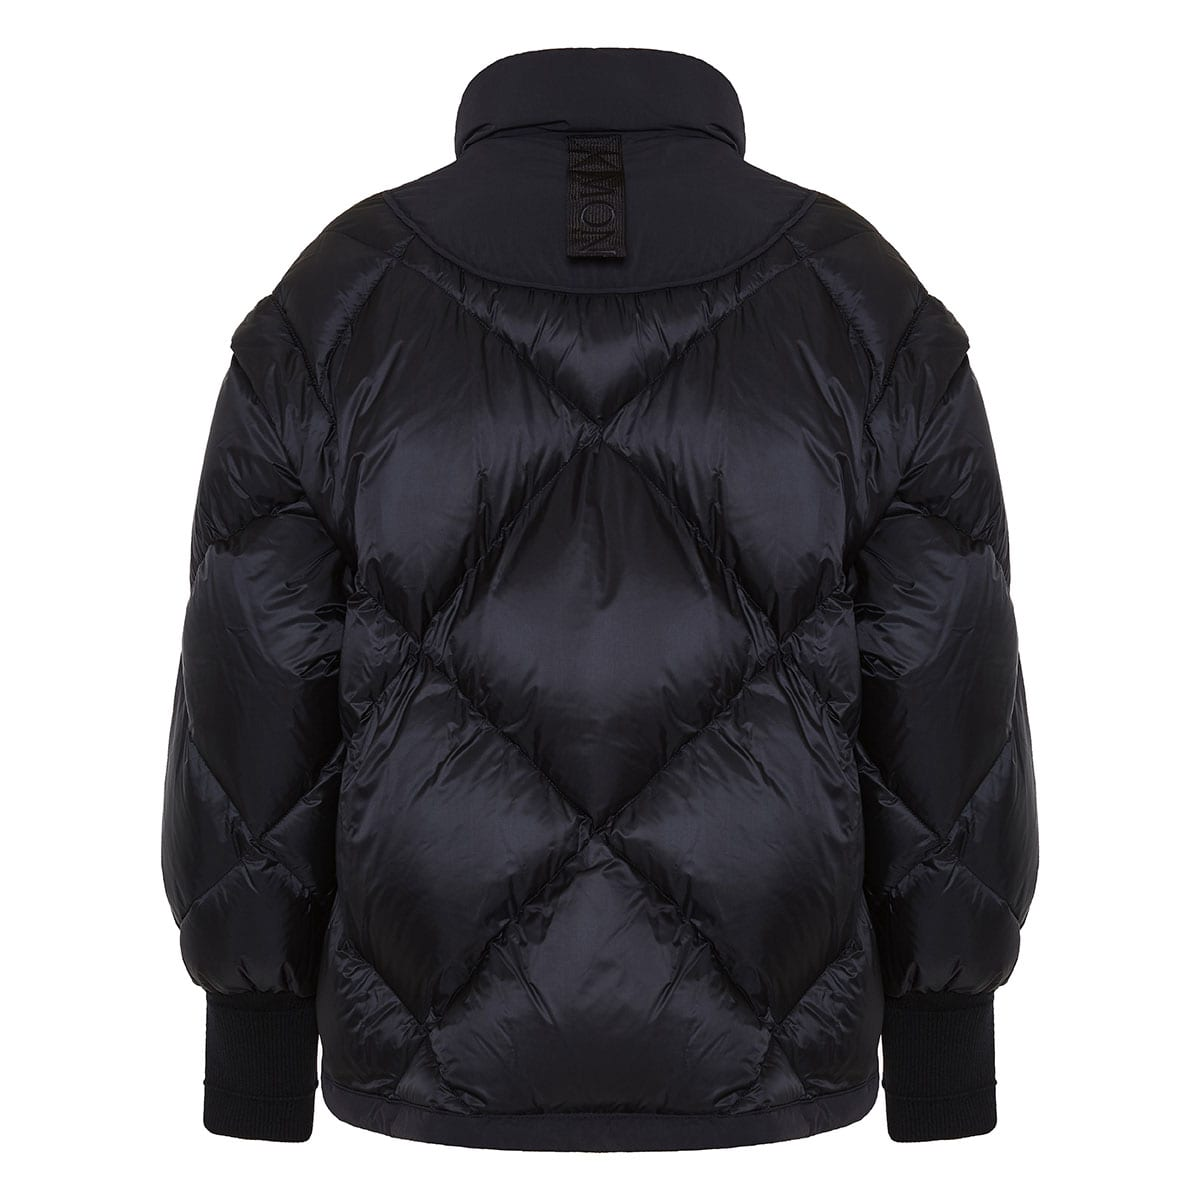 2 Moncler 1952 Francesca quilted puffer jacket